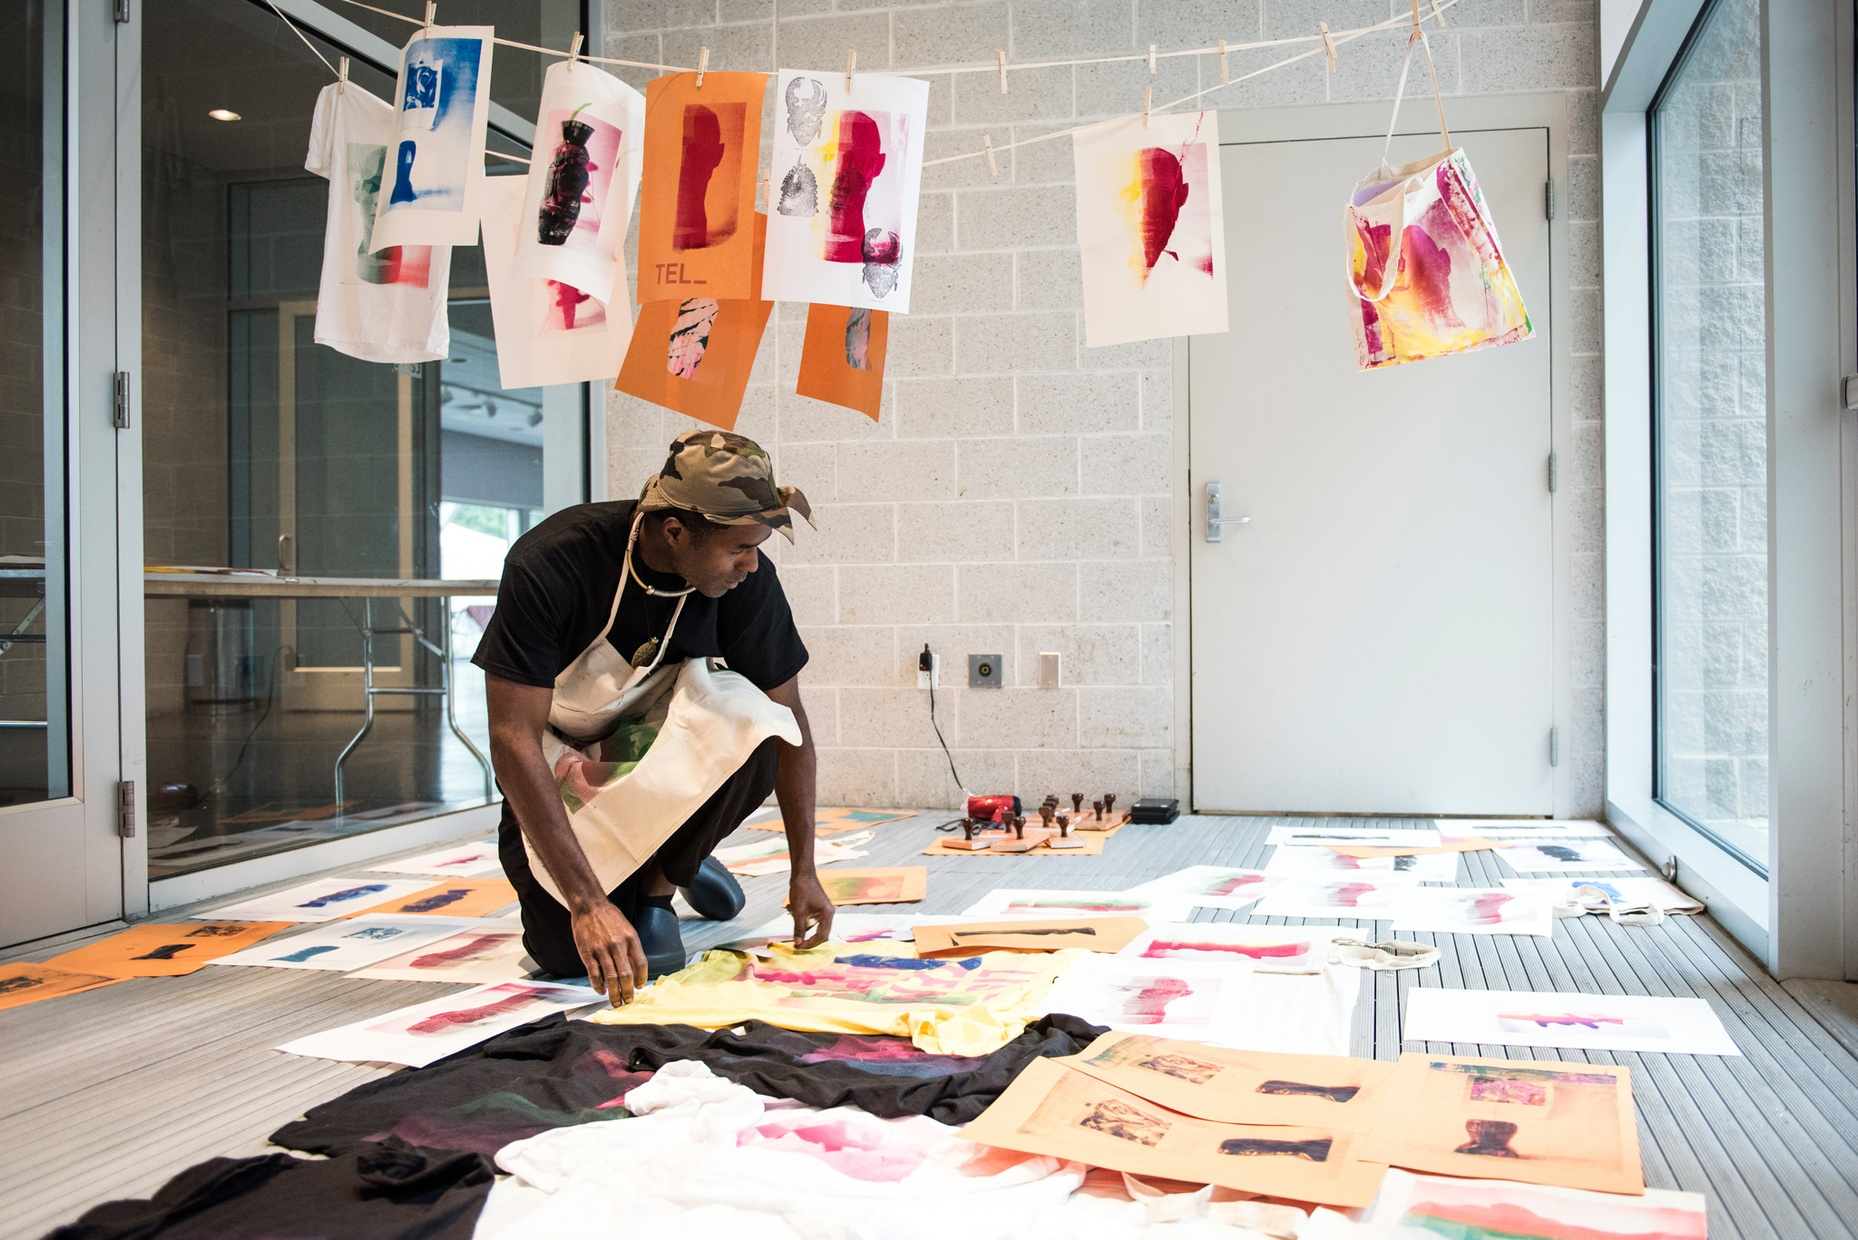 A Black man in an apron crouches in a space filled with prints on paper and t-shirts laid out to dry.